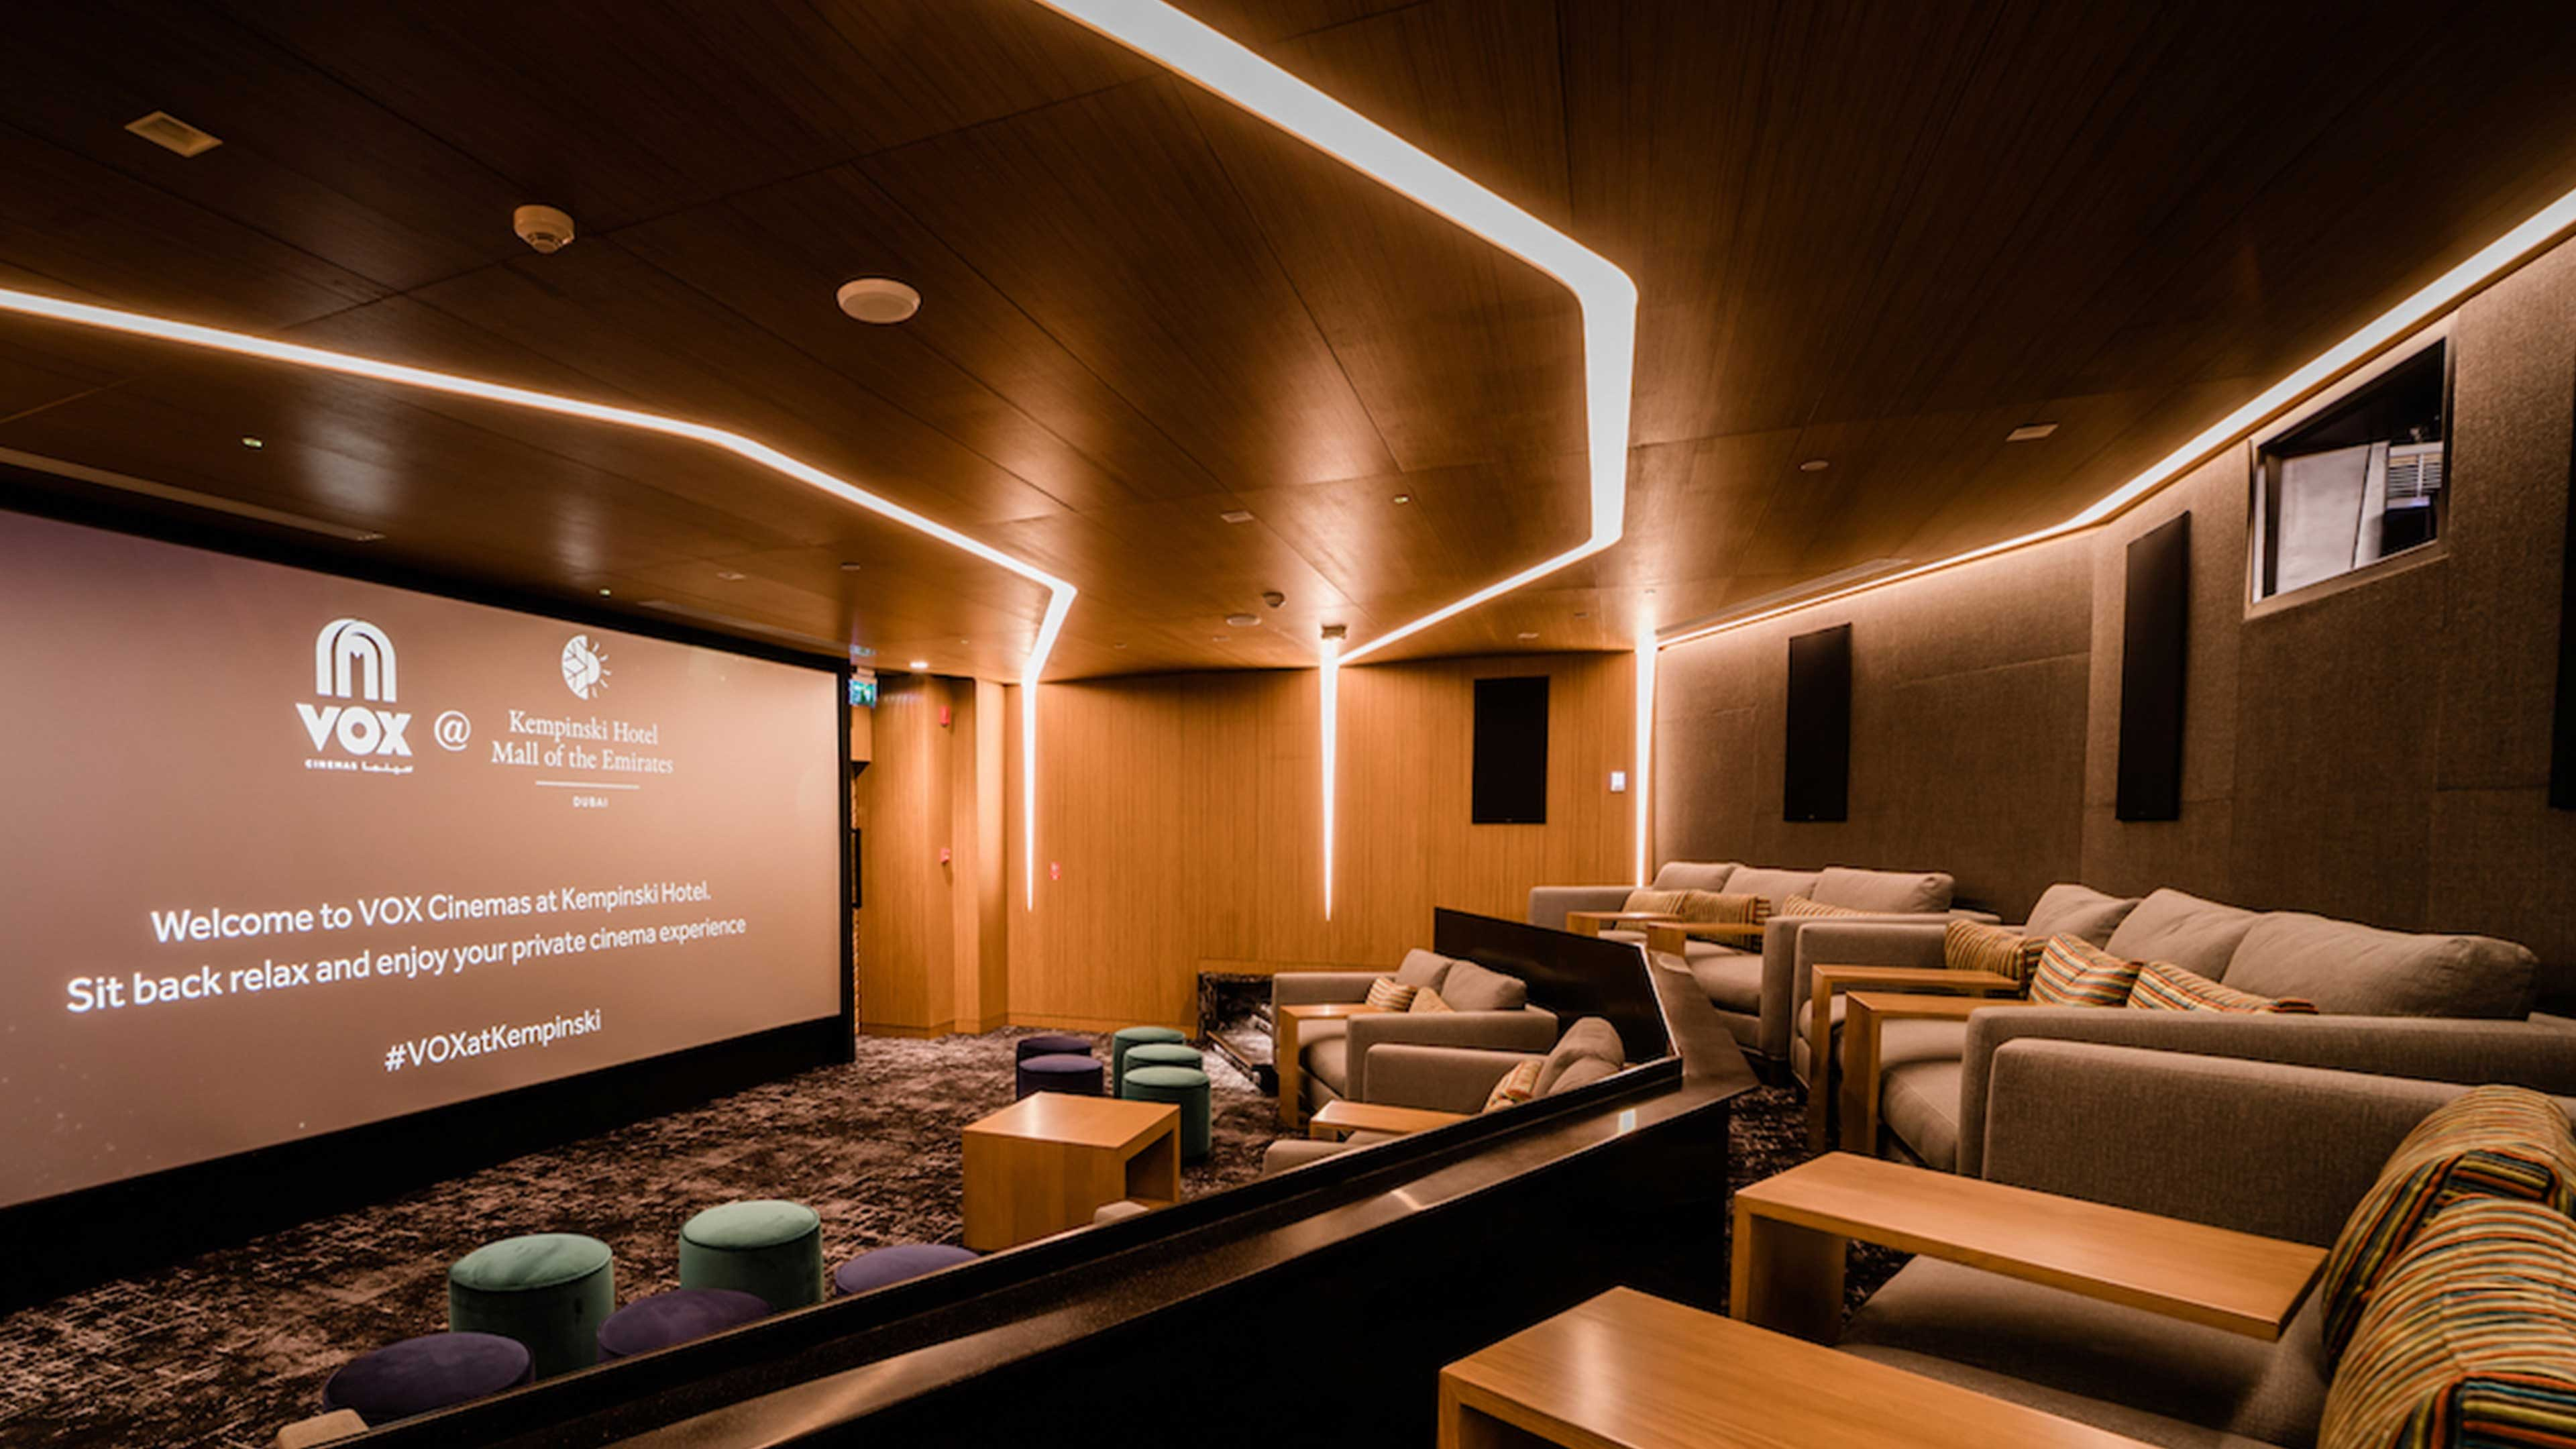 Architectural Lighting Design Recessed Linear Illumination Wall Ceiling Feature Private Luxury Cinema Dubai Studio N